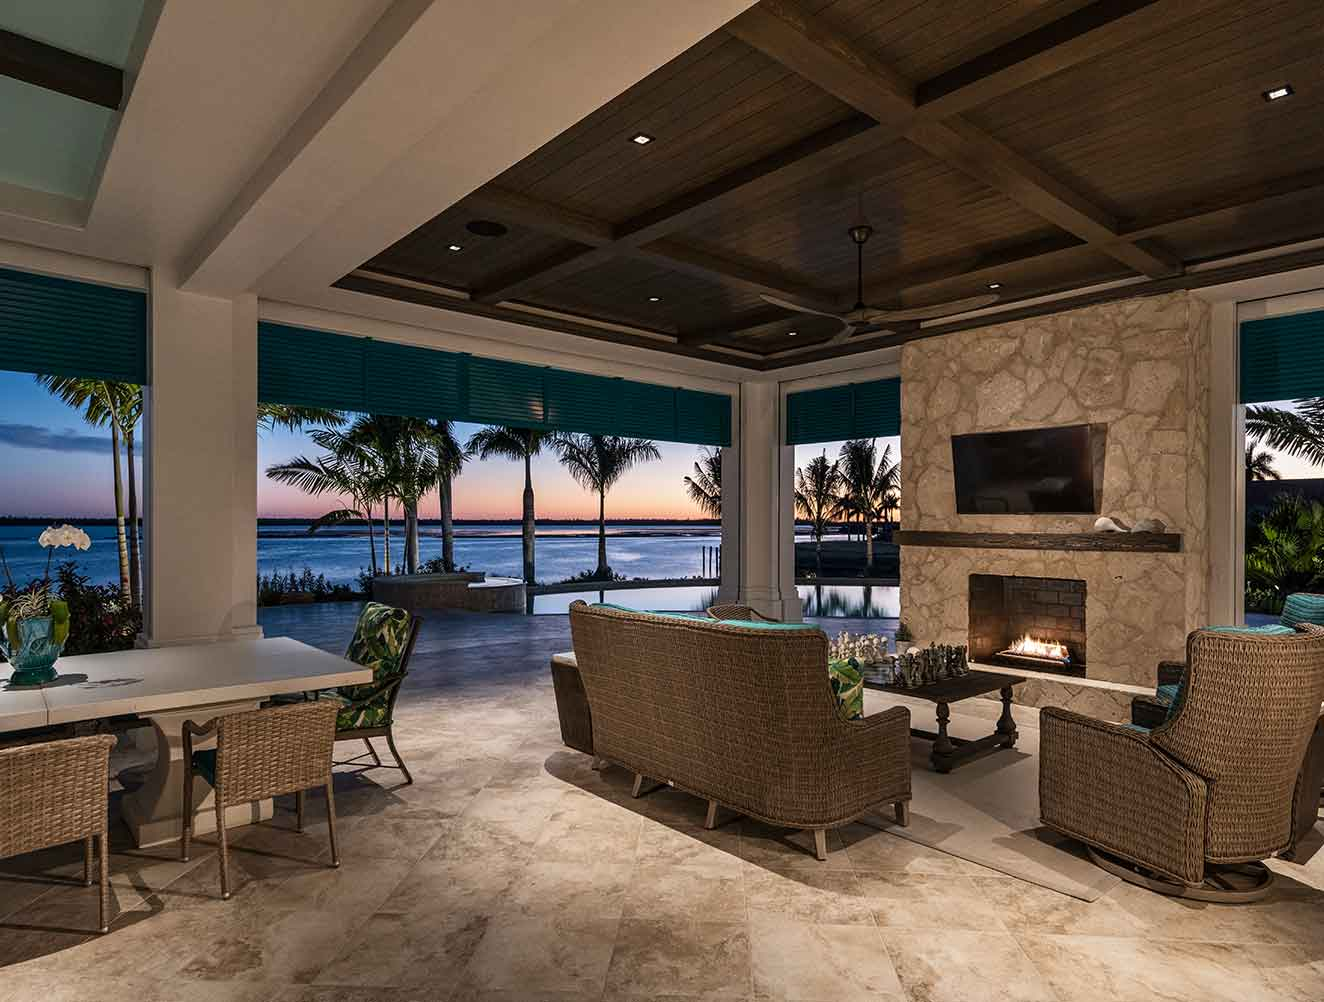 Outdoor Seating with waterfront views at Caxambas Residence in Naples Florida, single family home designed by Kukk Architecture & Design Naples Architecture Firm